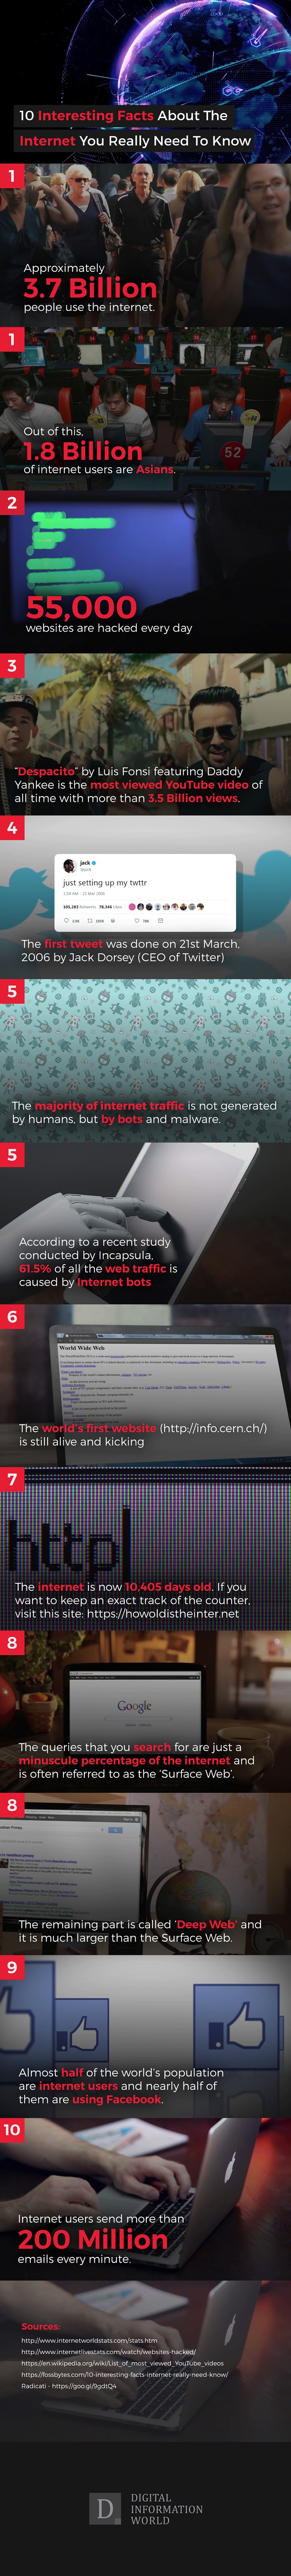 10 Fascinating Facts About The Internet